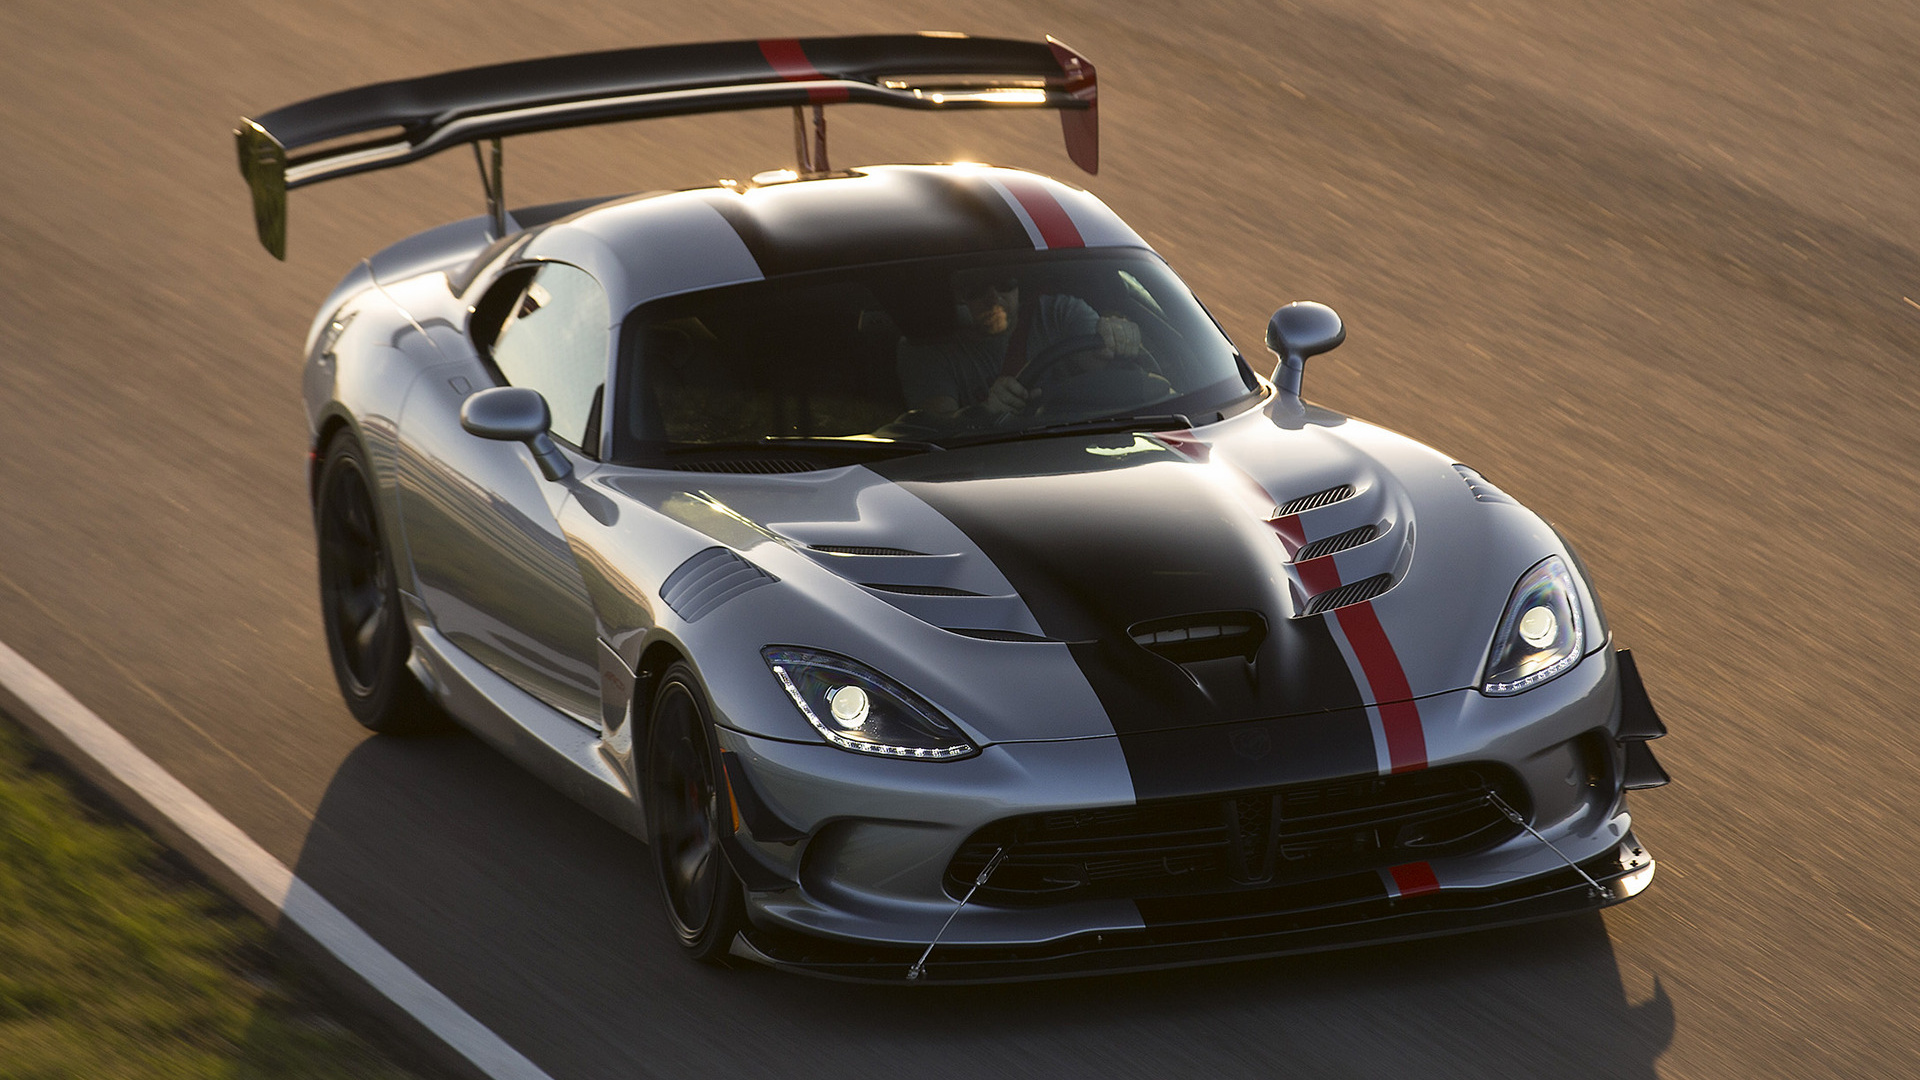 2016 Dodge Viper ACR   Wallpapers and HD Images Car Pixel 1920x1080